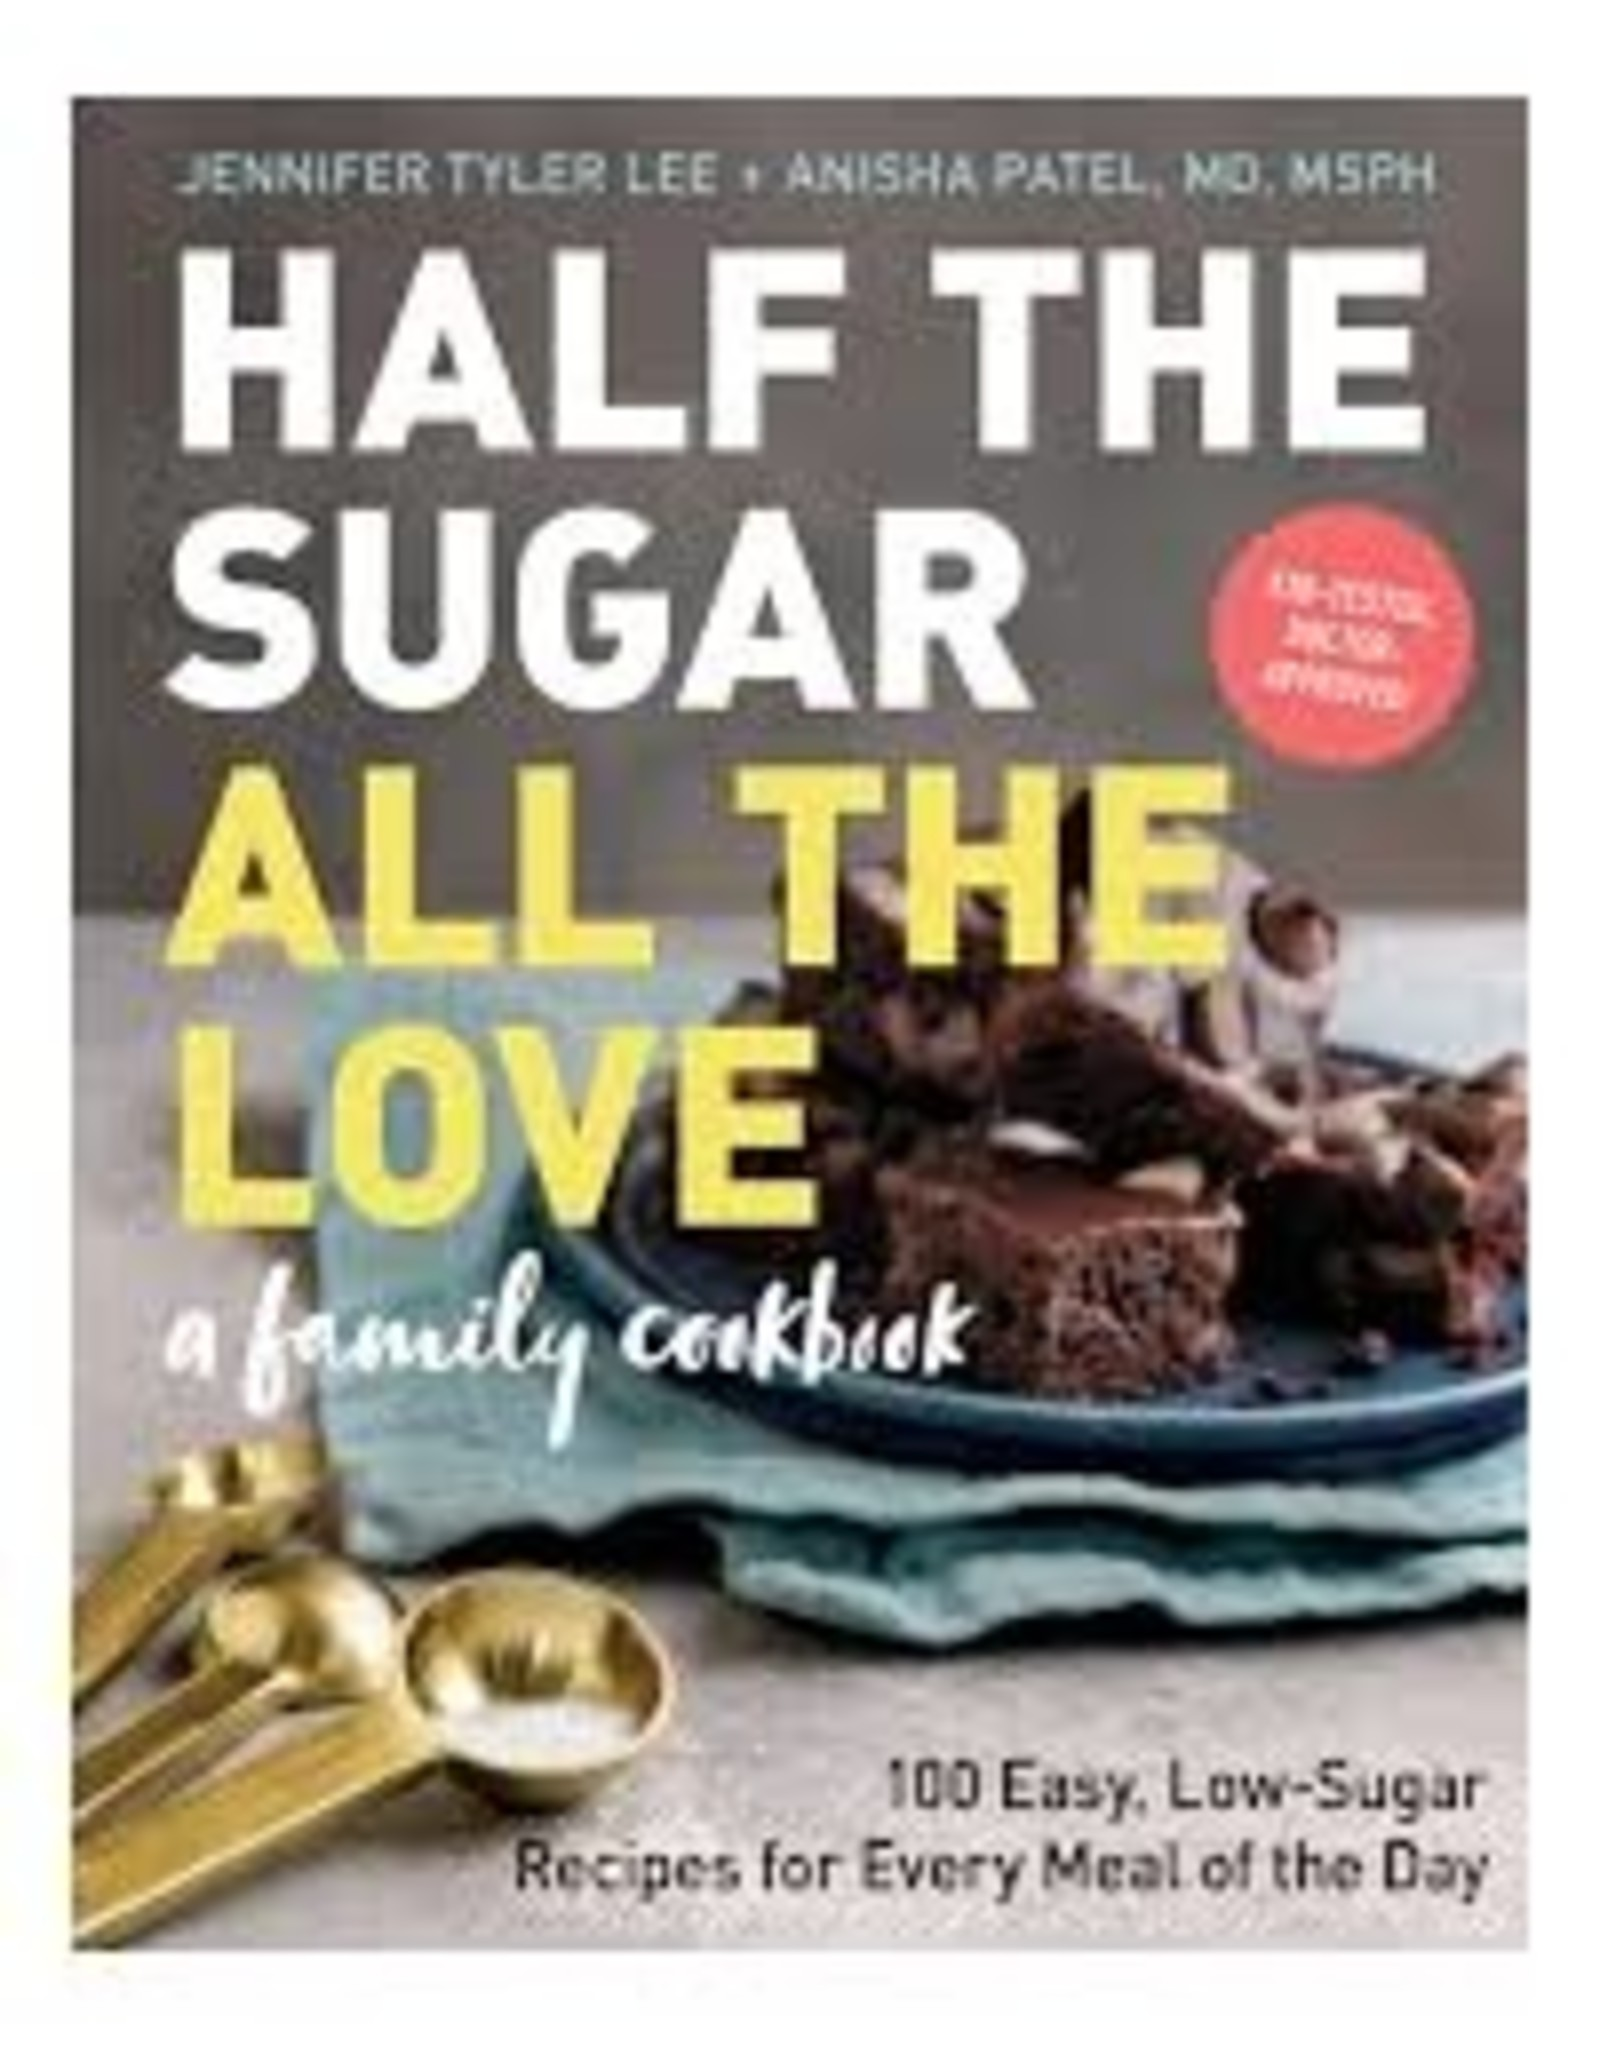 Books Half The Sugar All The Love : A Family Cookbook by Jennifer Tyler Lee & Anisha Patel MD MSPH (Sourceathome)